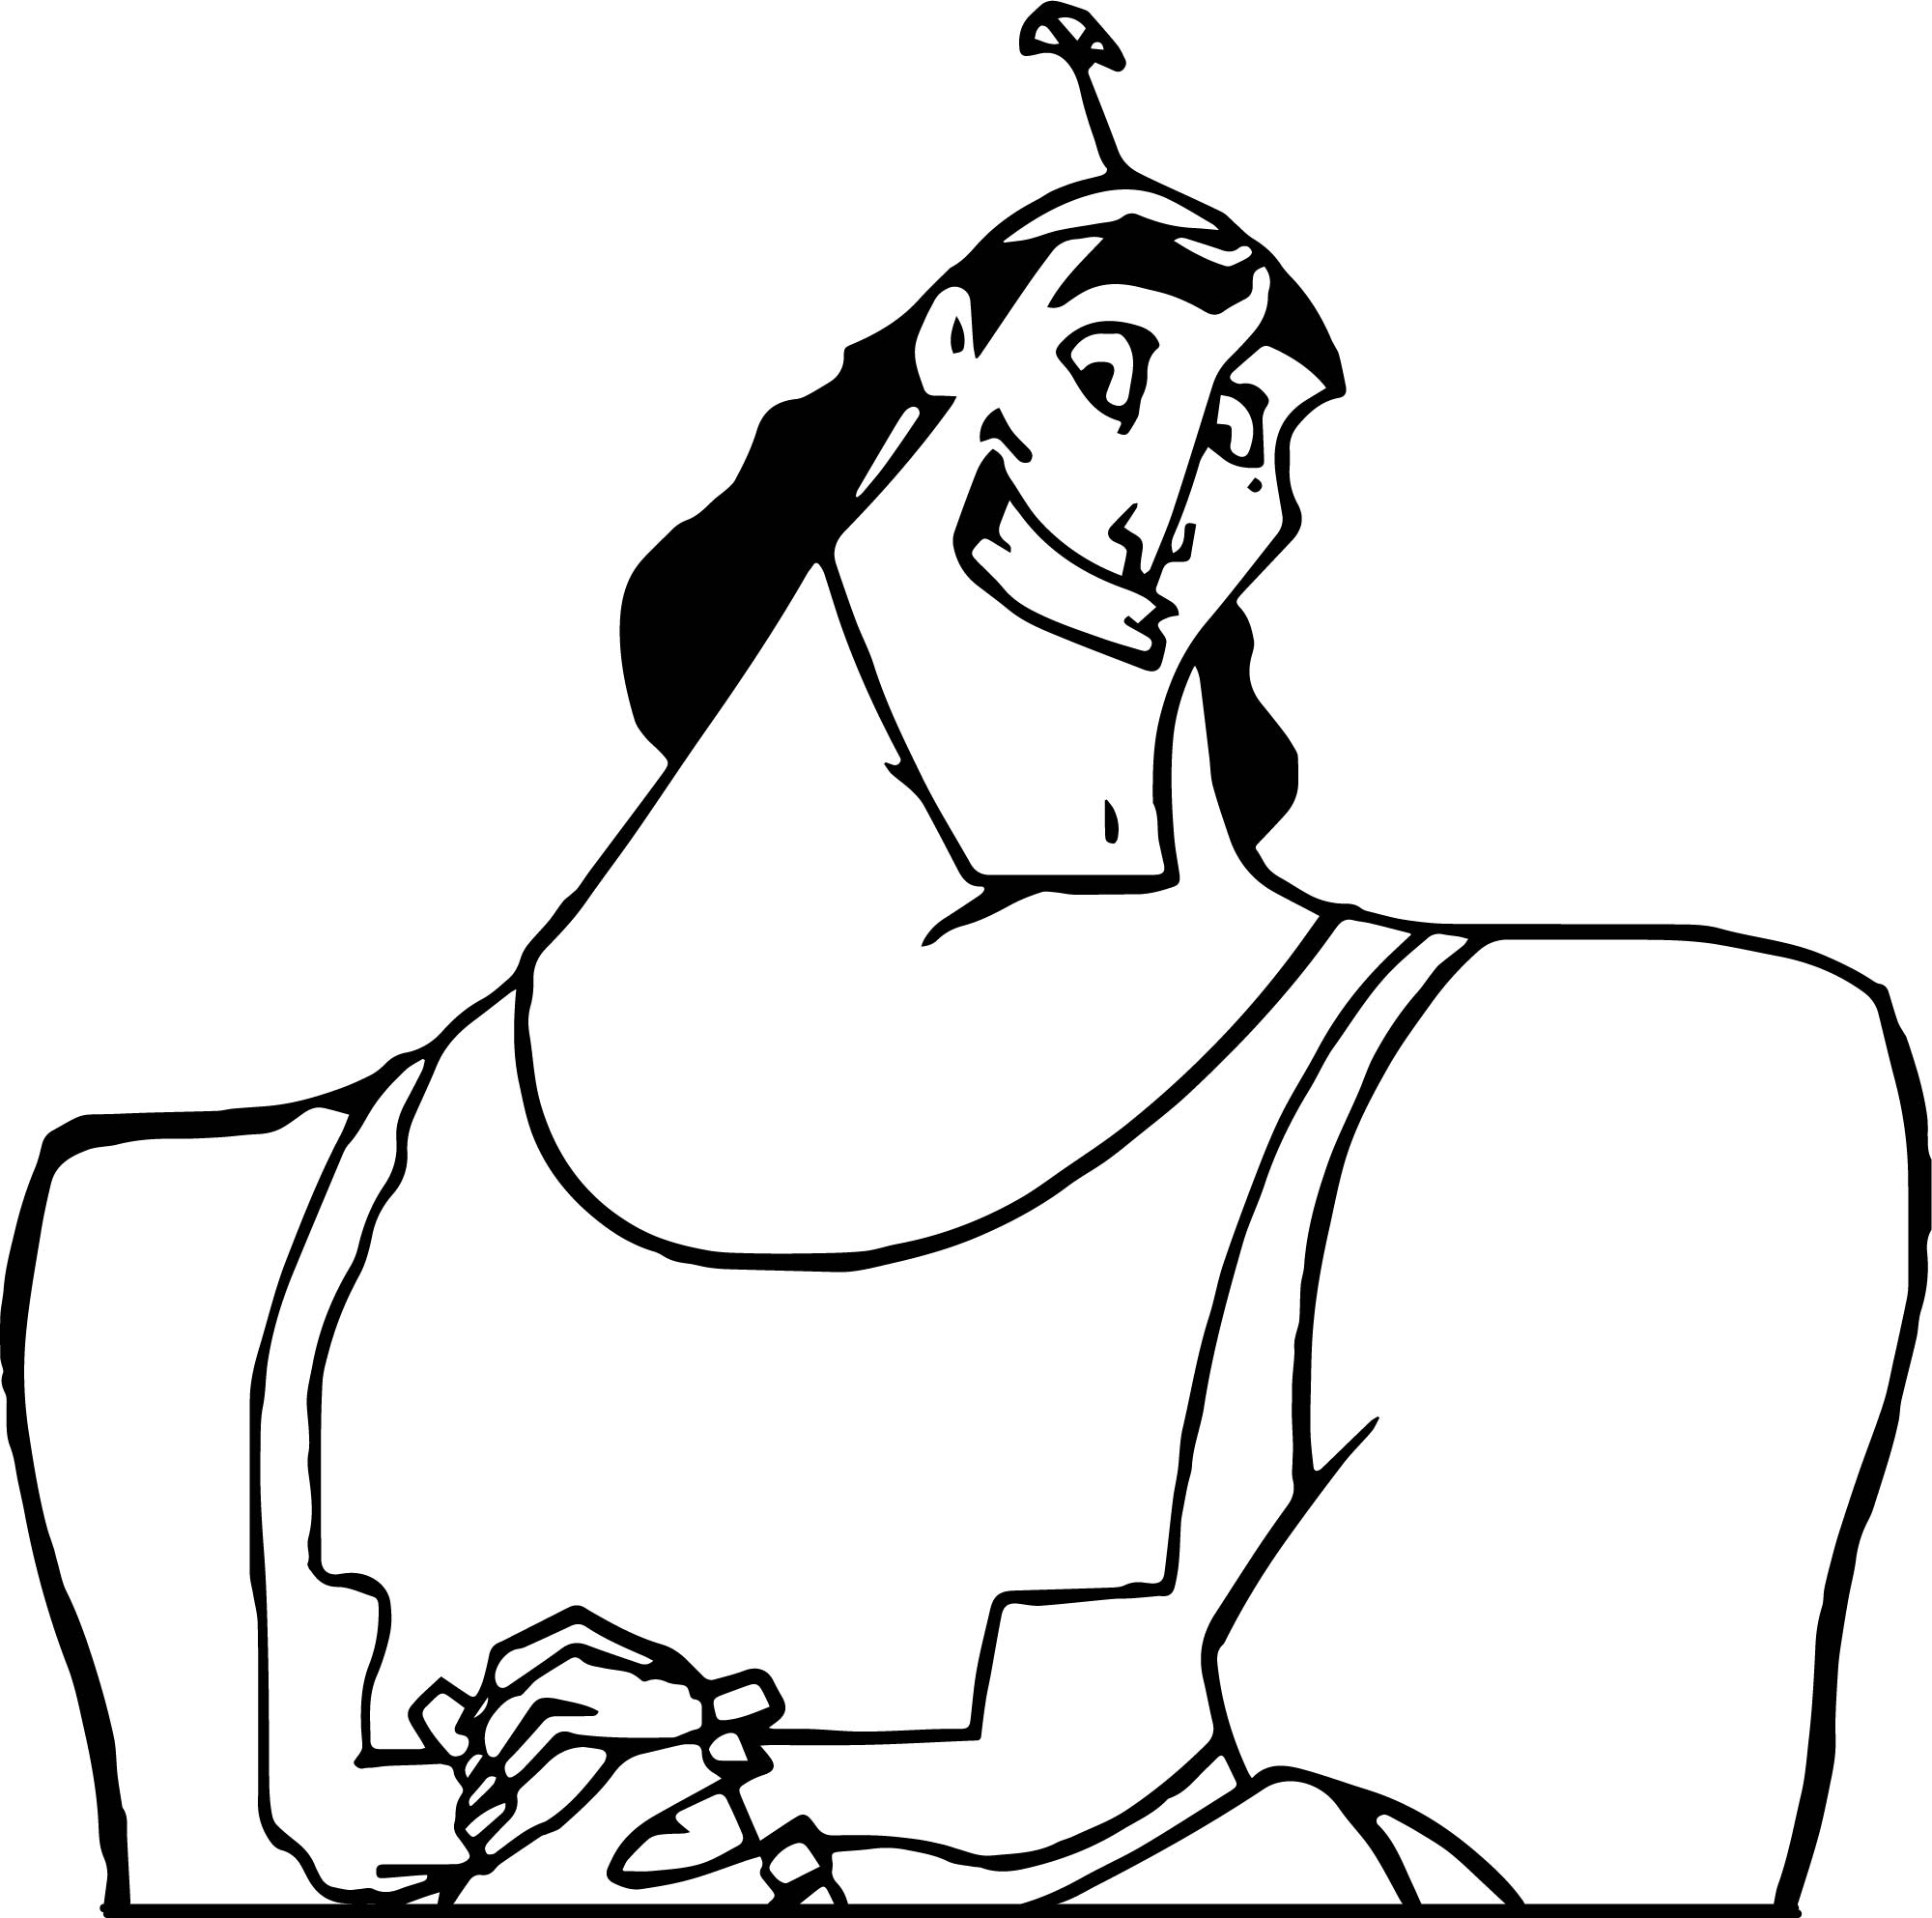 kronk coloring pages - photo#11